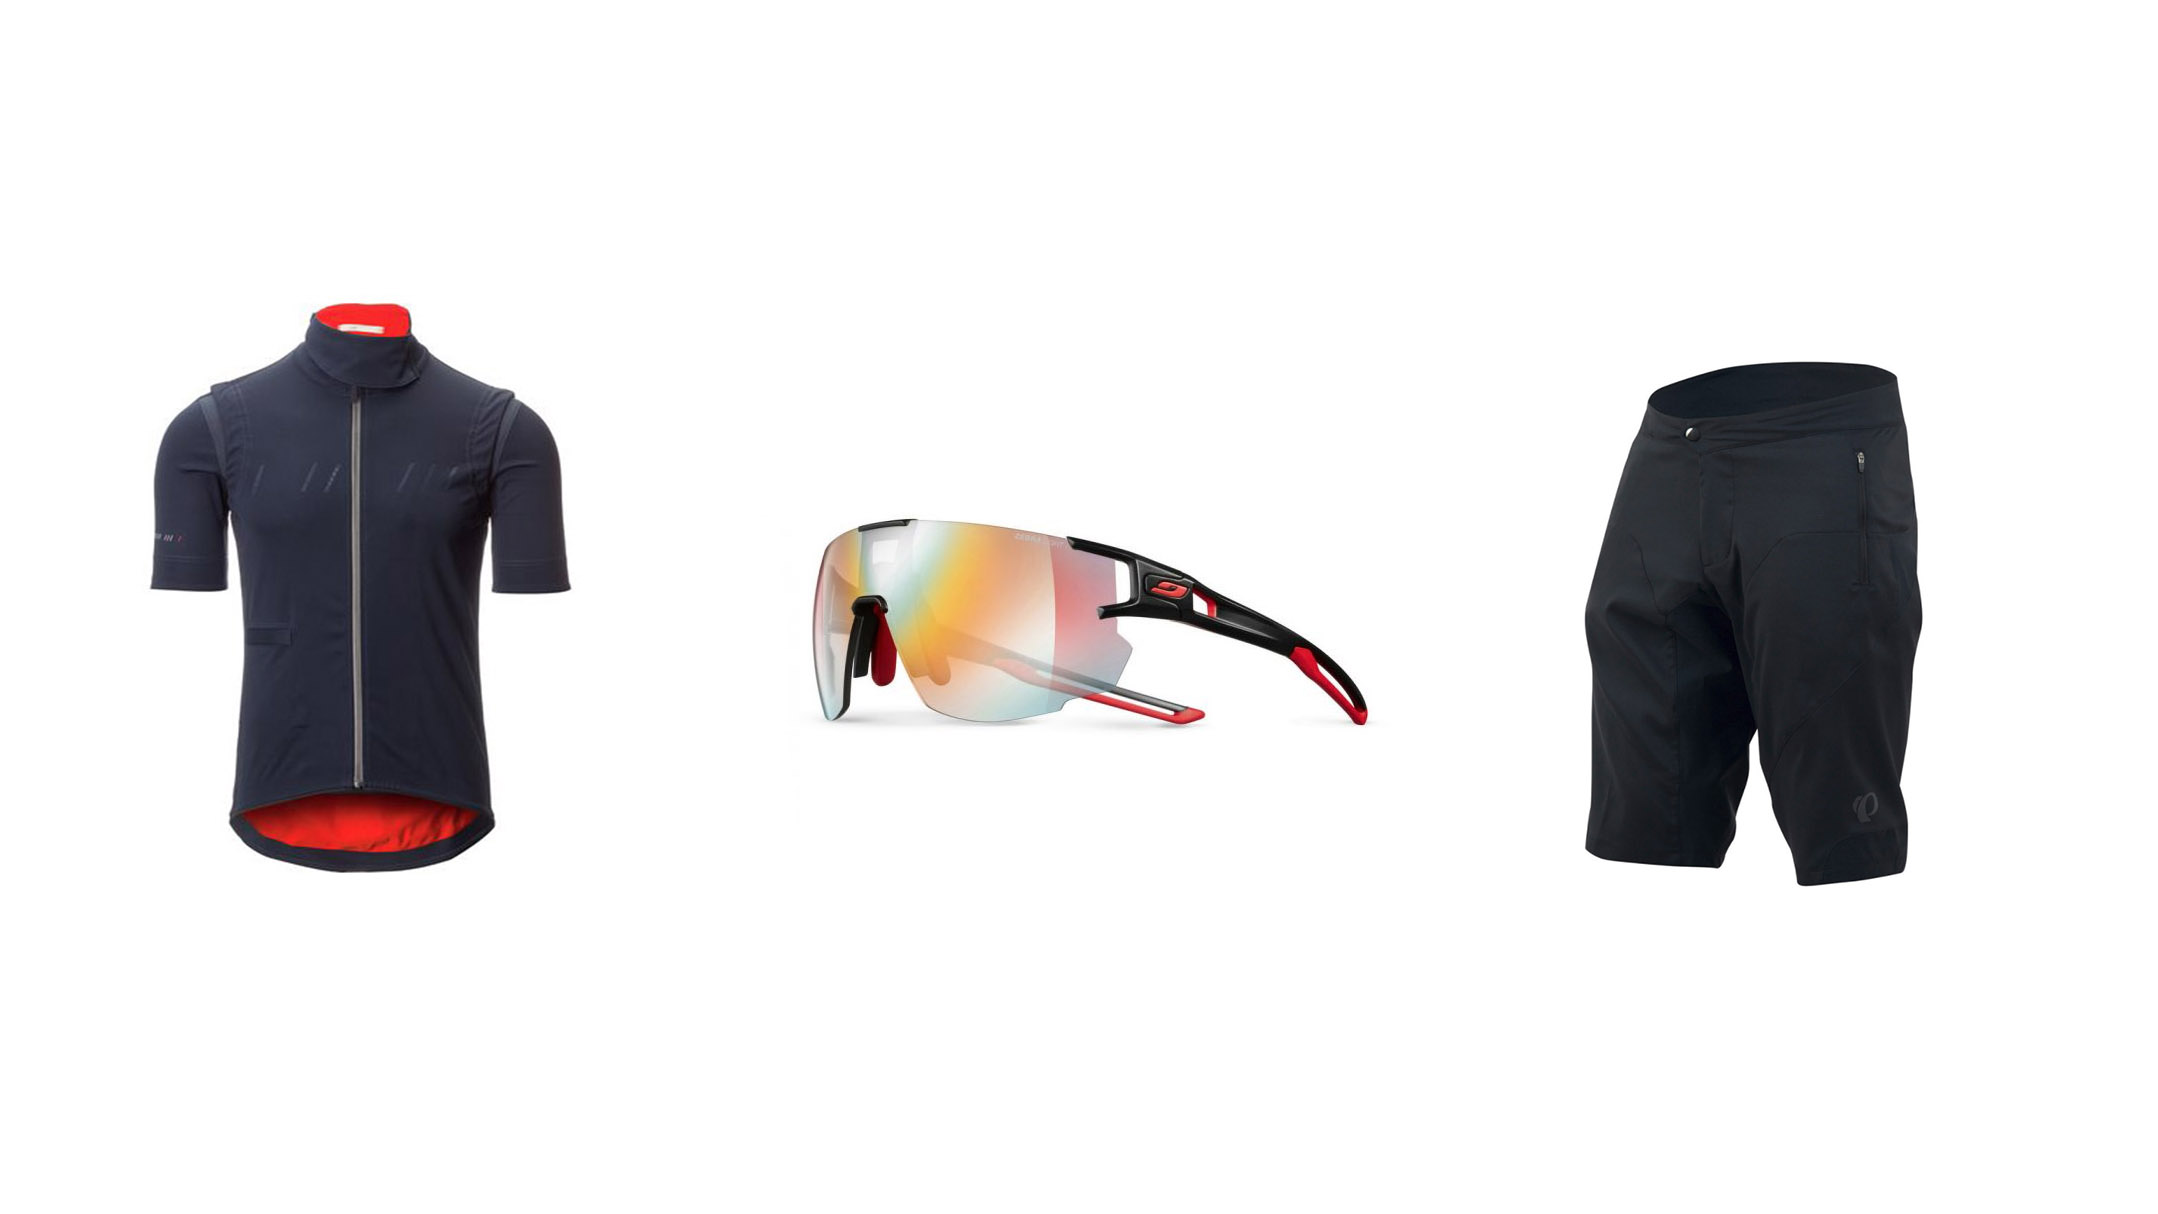 16 Essential Pieces of Cycling Gear You Need This Spring